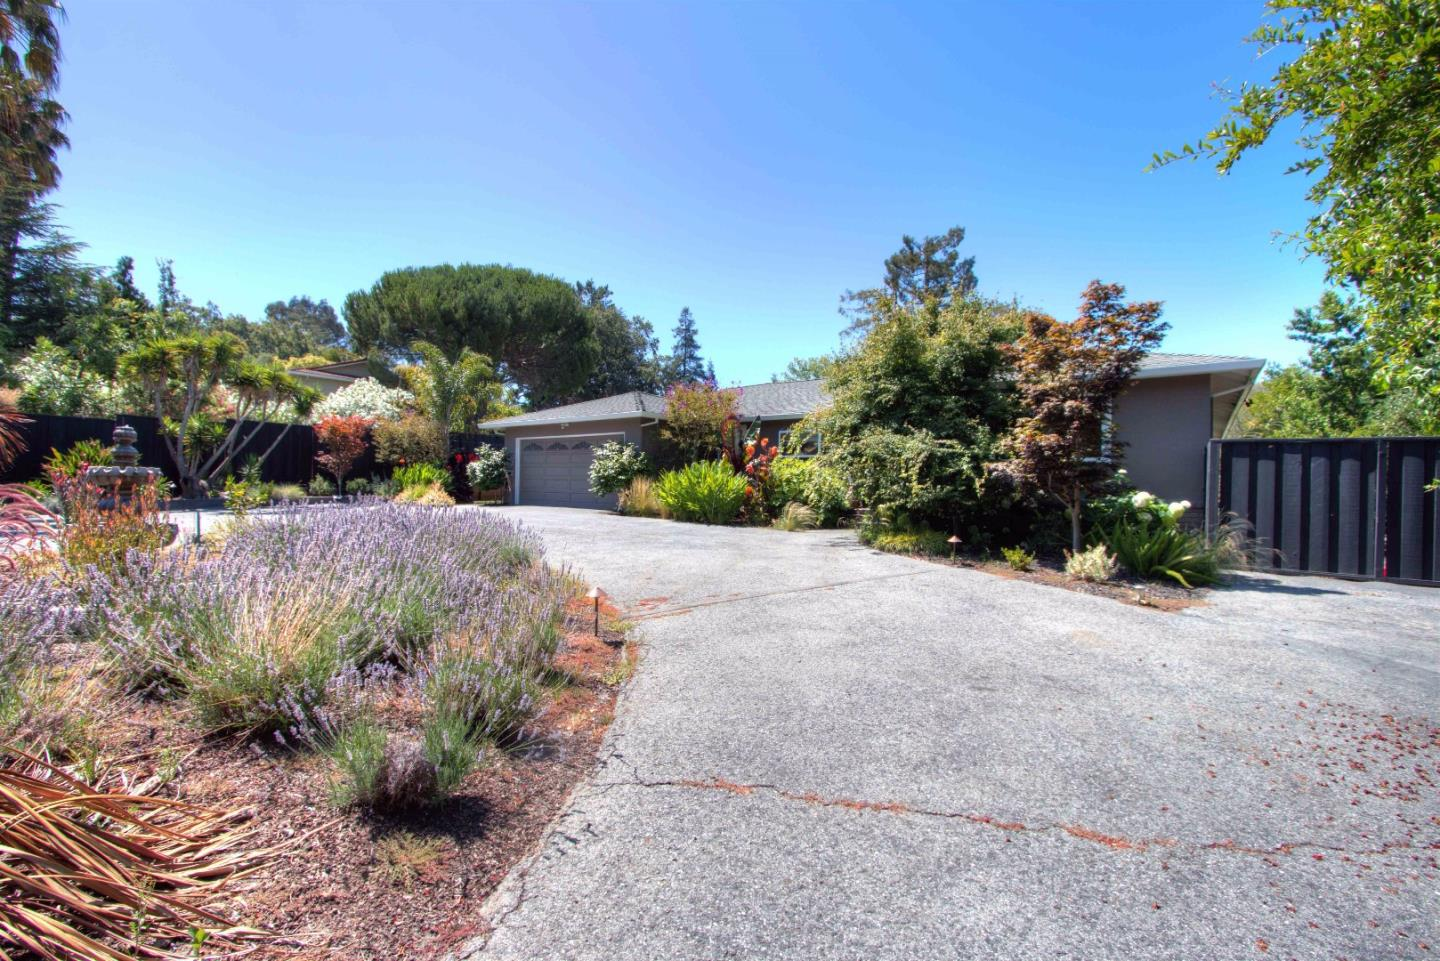 Additional photo for property listing at 2452 Alameda De Las Pulgas  Woodside, California 94061 United States